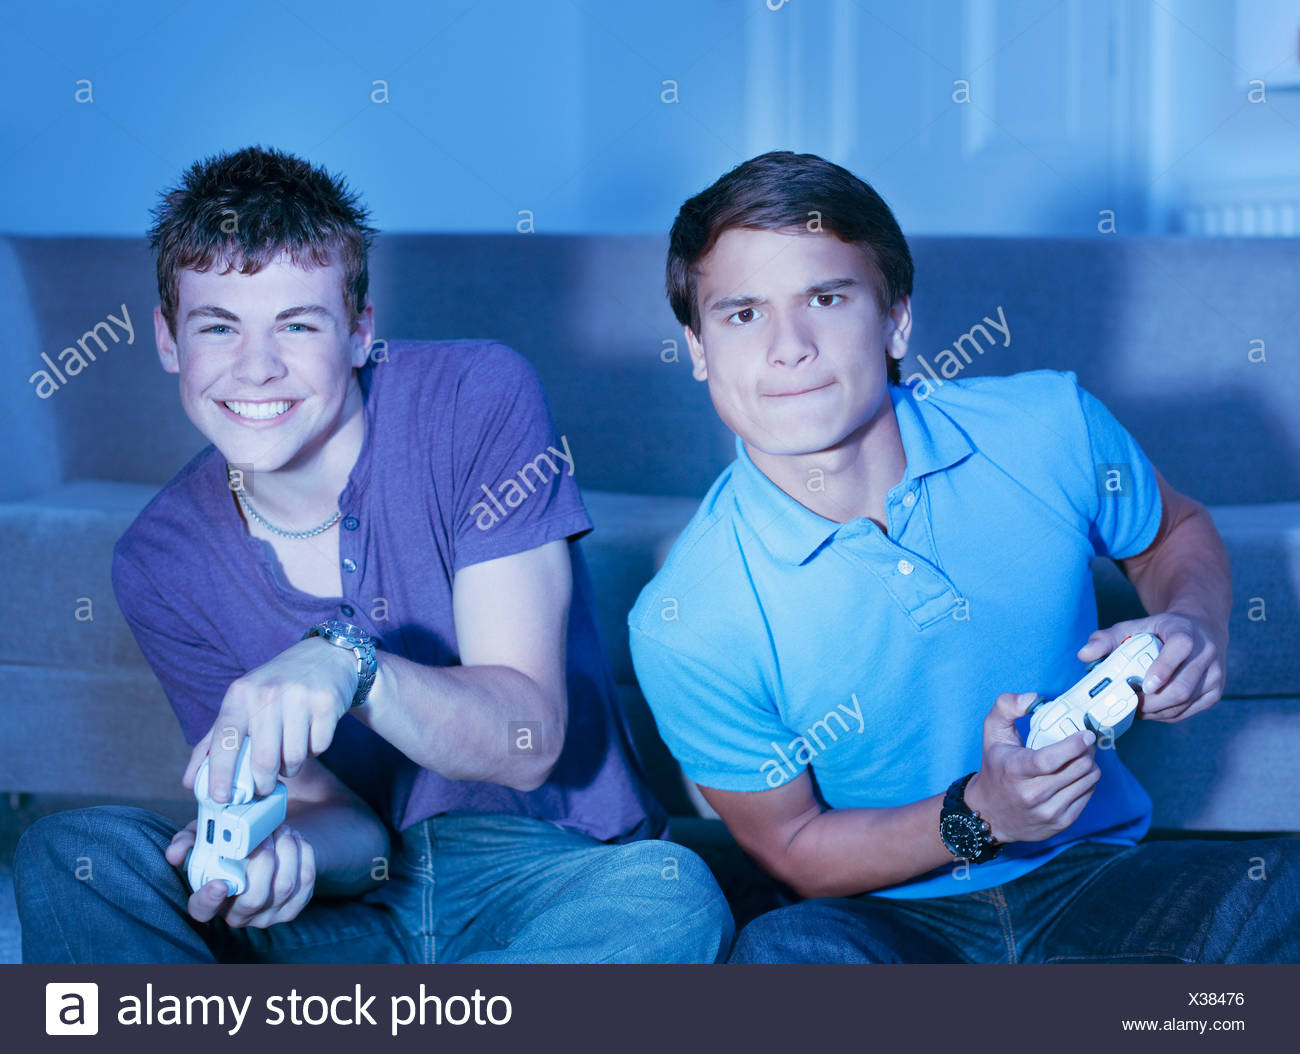 Smiling teenage boys playing video game - Stock Image